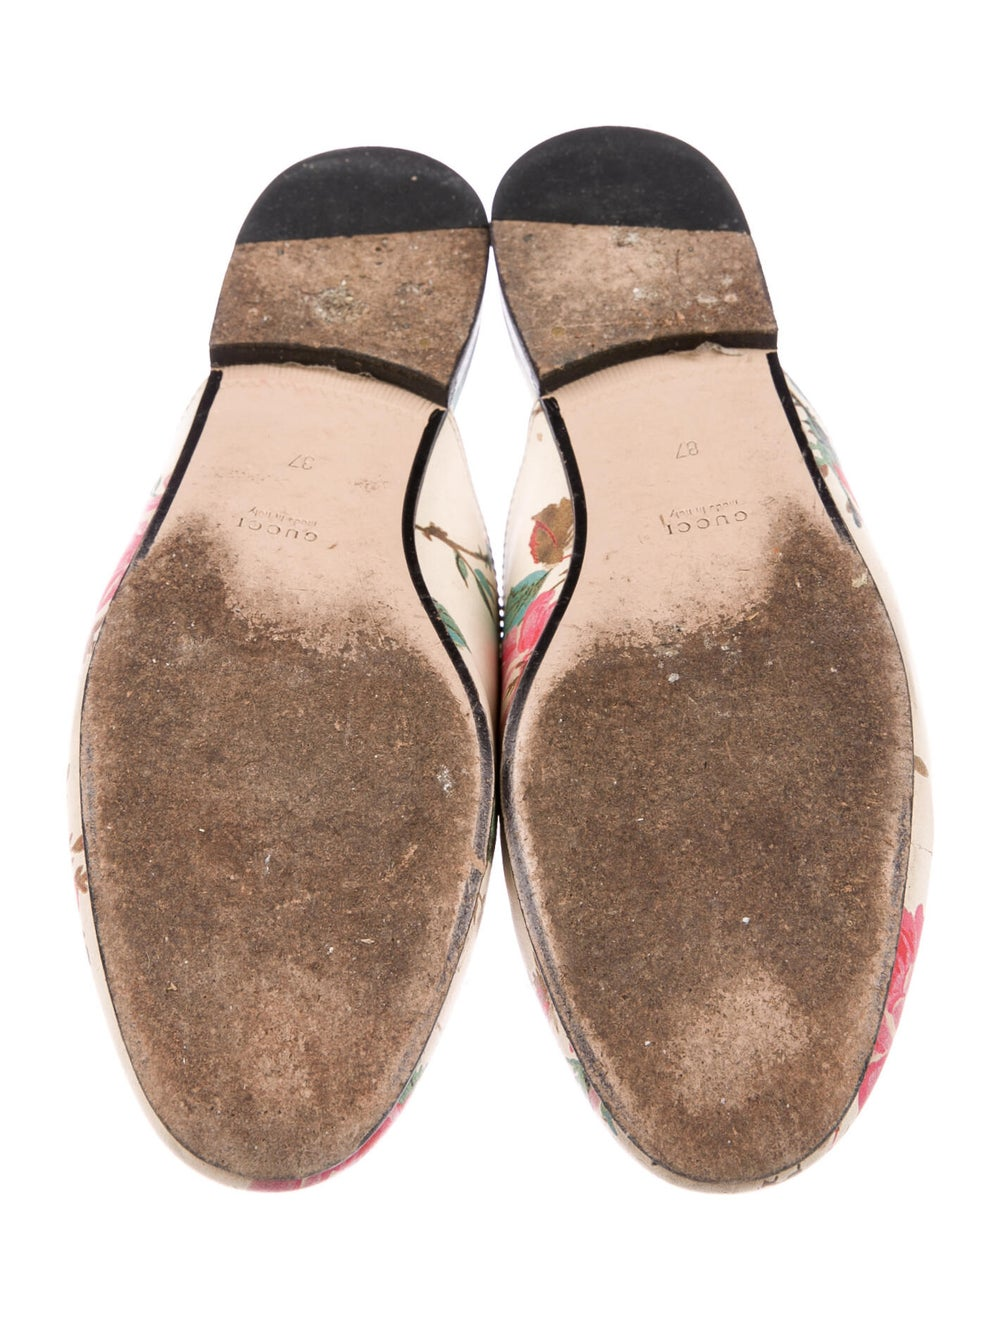 Gucci Princetown Floral Mules Leather Mules - image 5